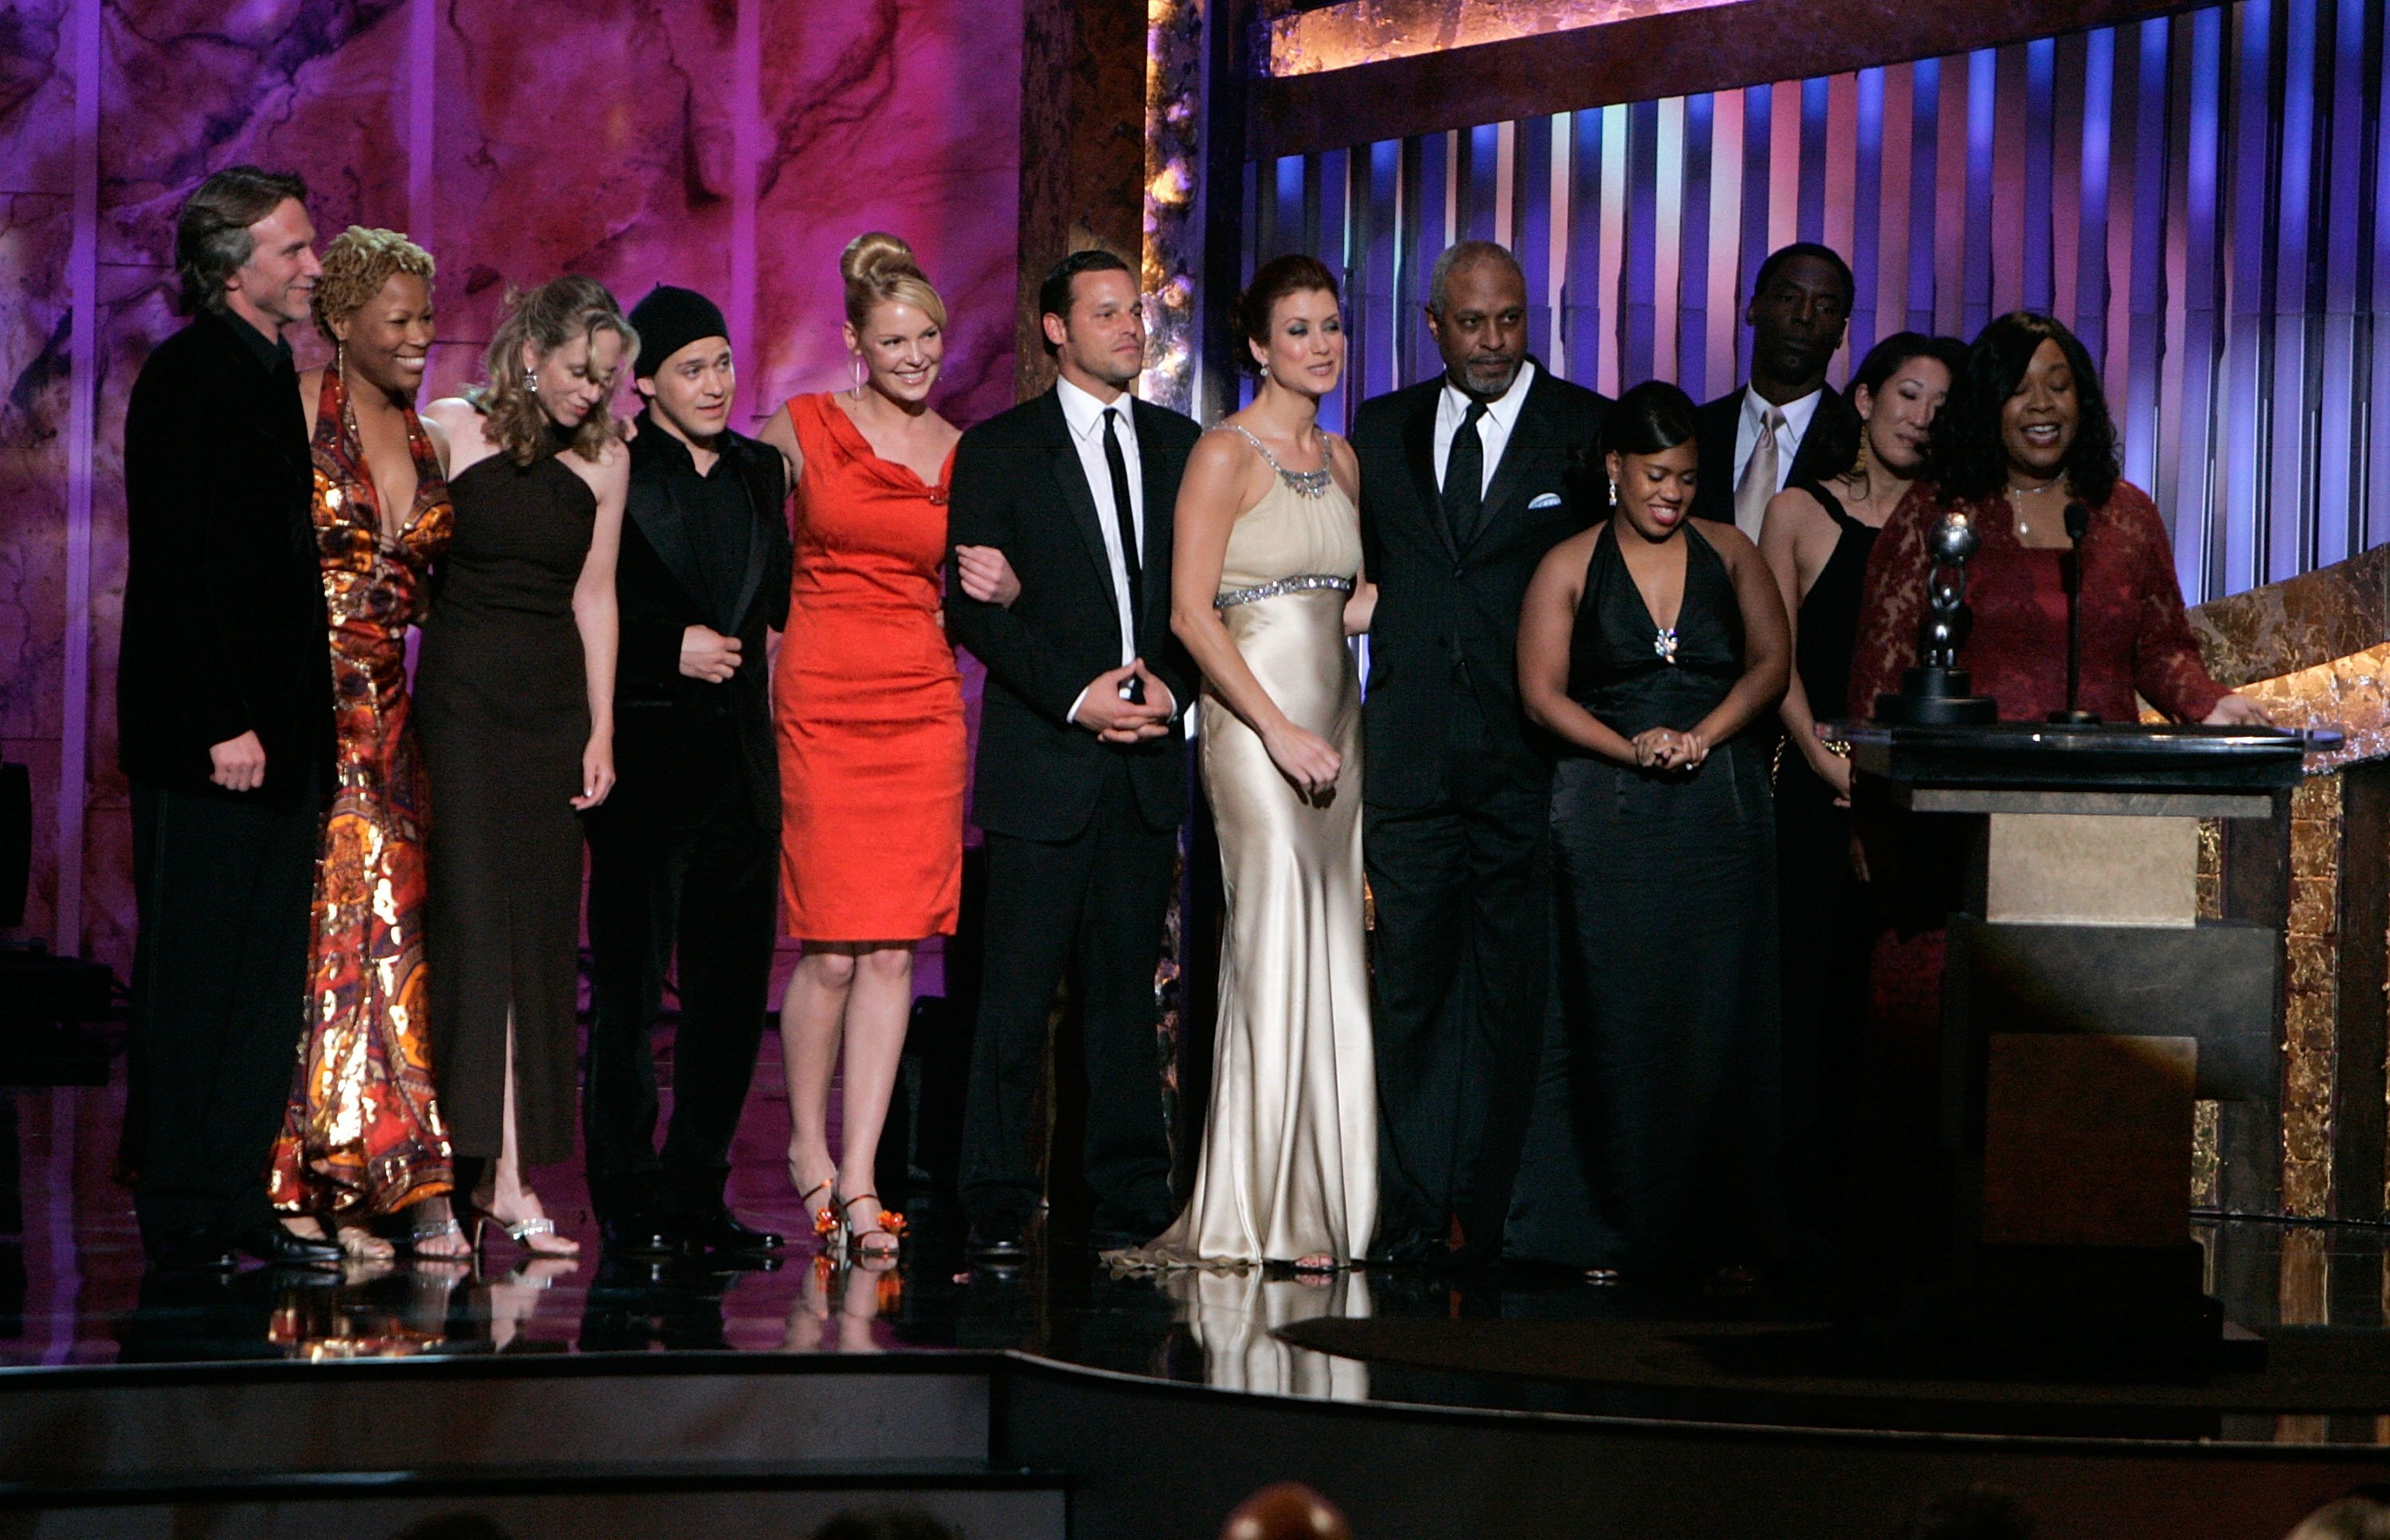 Image Credits: Getty Images | The medical drama series has received more than 200 award nominations